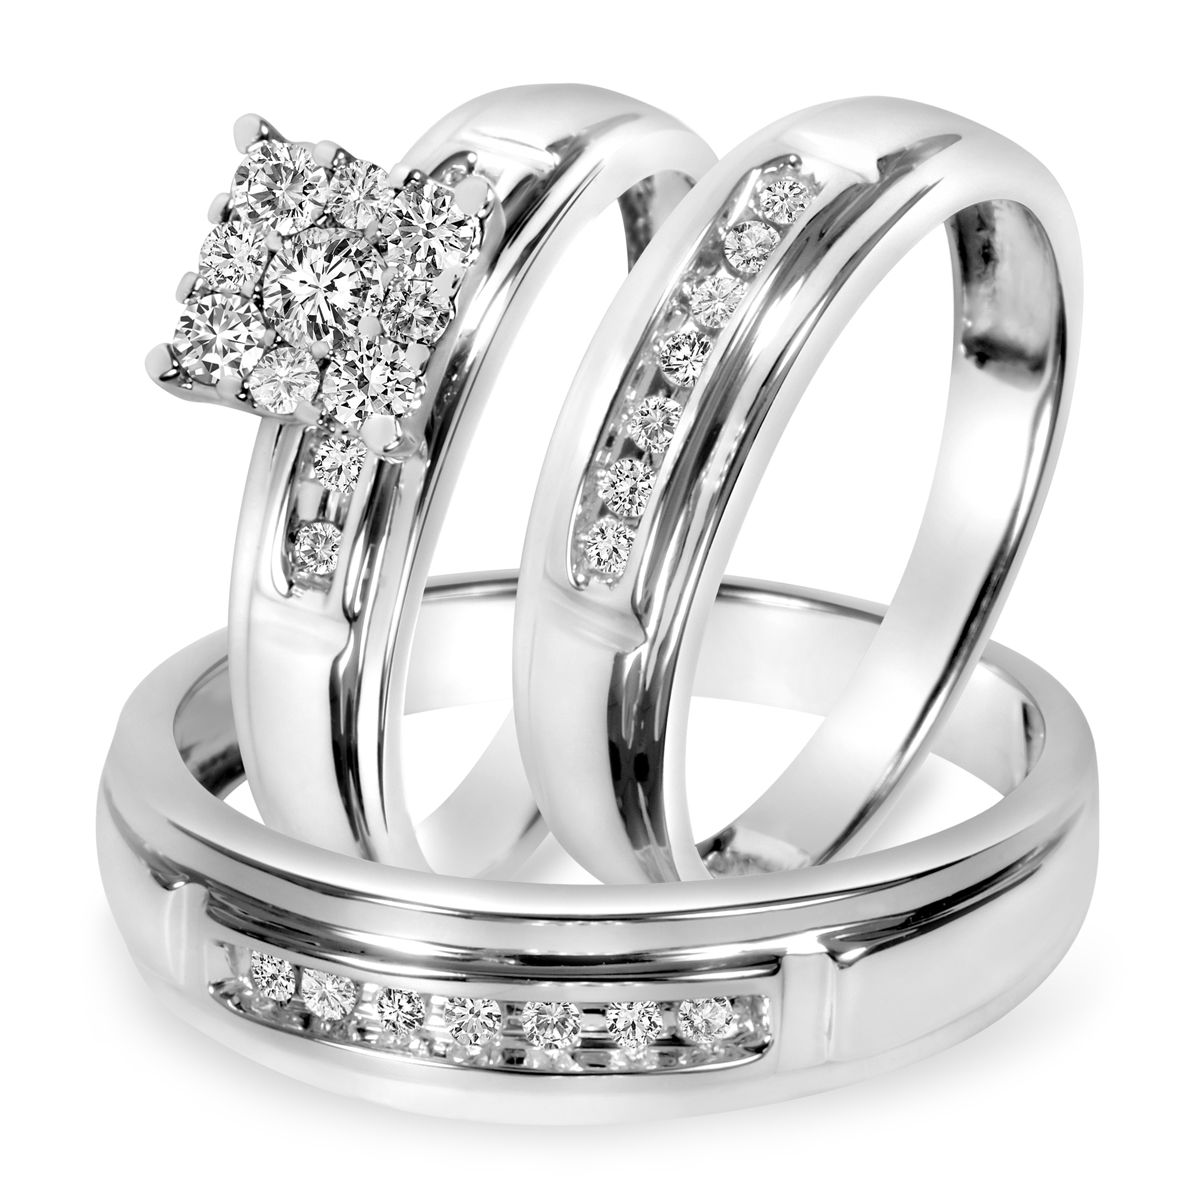 1/2 CT. T.W. Diamond Trio Matching Wedding Ring Set 10K White Gold